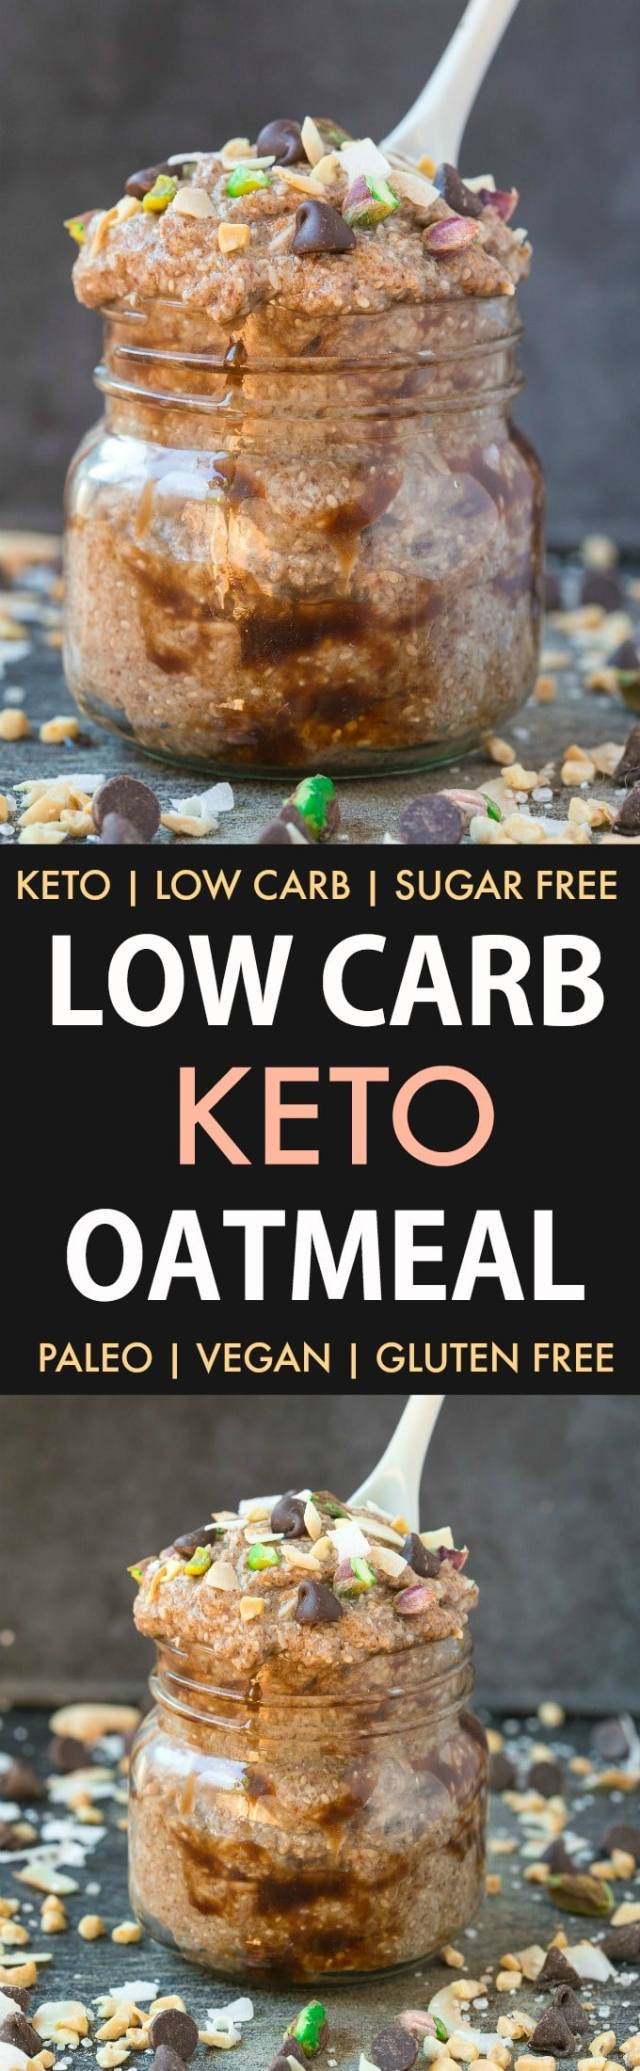 Low Carb Keto Oatmeal (Paleo, Vegan, Gluten Free)- An easy recipe for instant or overnight keto oatmeal made with flaxmeal, chia seeds and coconut- The perfect sugar-free ketogenic breakfast! #oatlessoats #overnightoats #lowcarb #ketogenicbreakfast #ketobreakfast #ketosis | Recipe on thebigmansworld.com